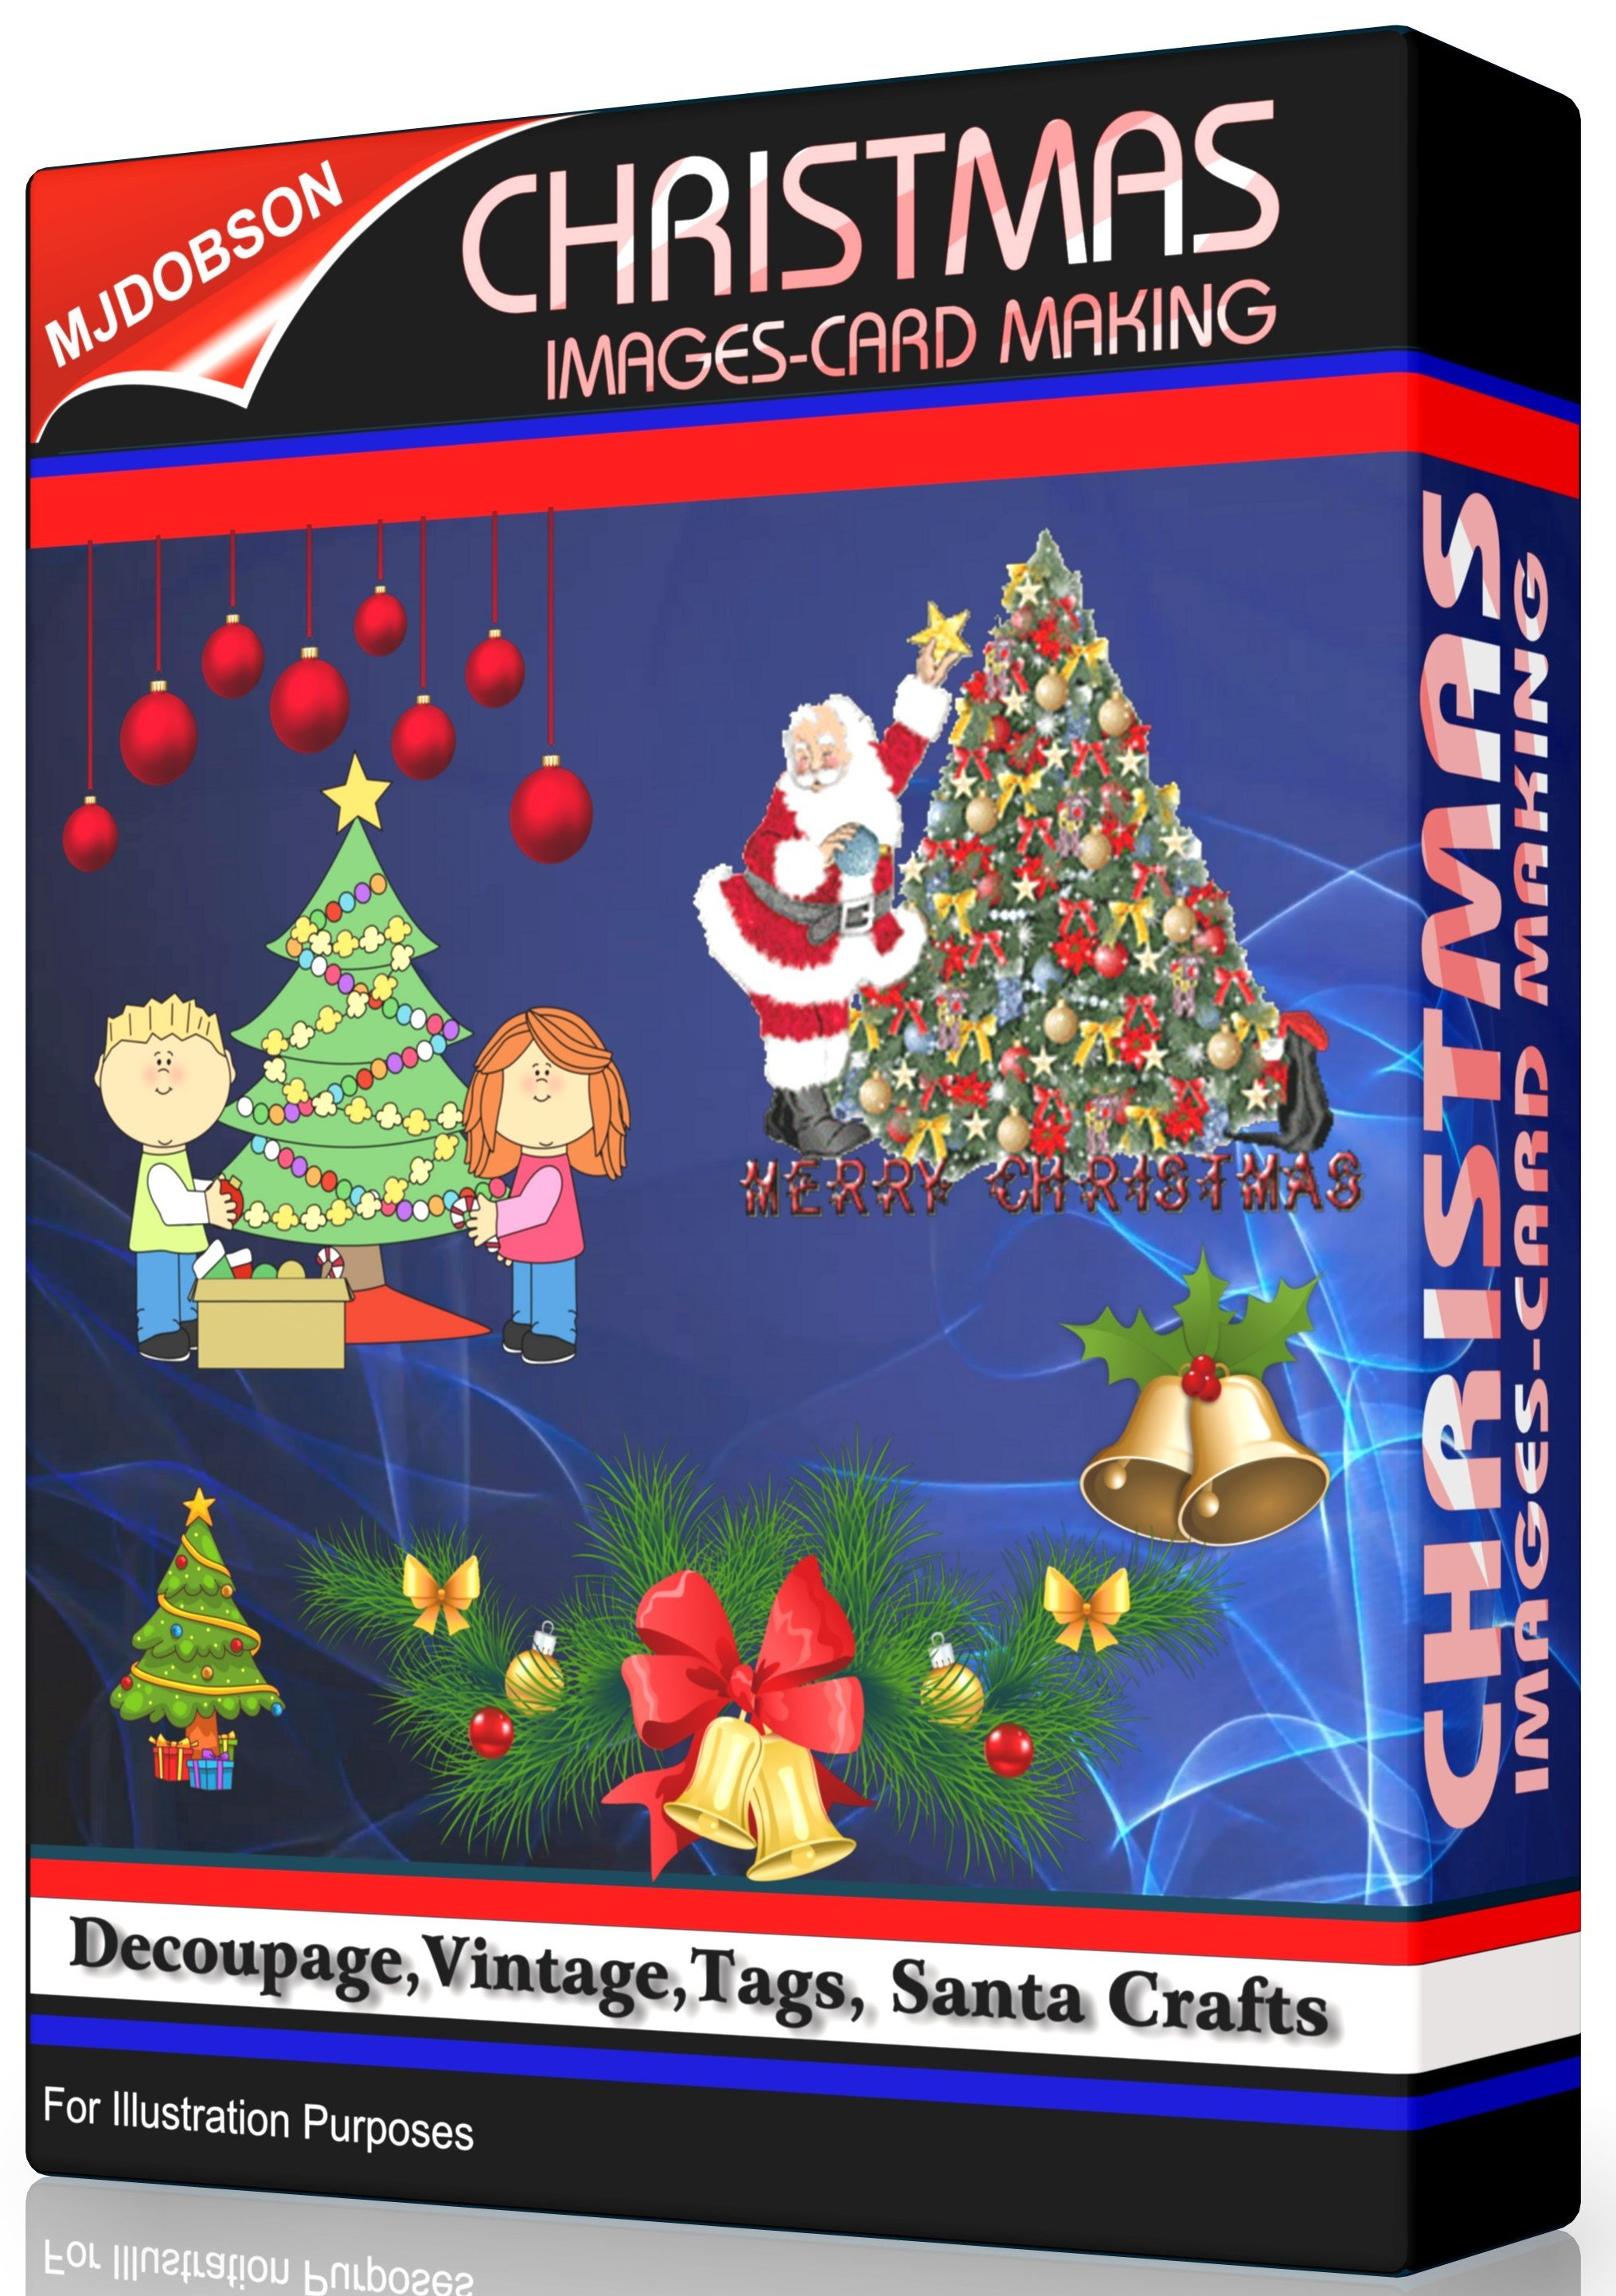 Details about CHRISTMAS IMAGES,Card Making, Decoupage,Vintage,Tags, Santa  Craft Download